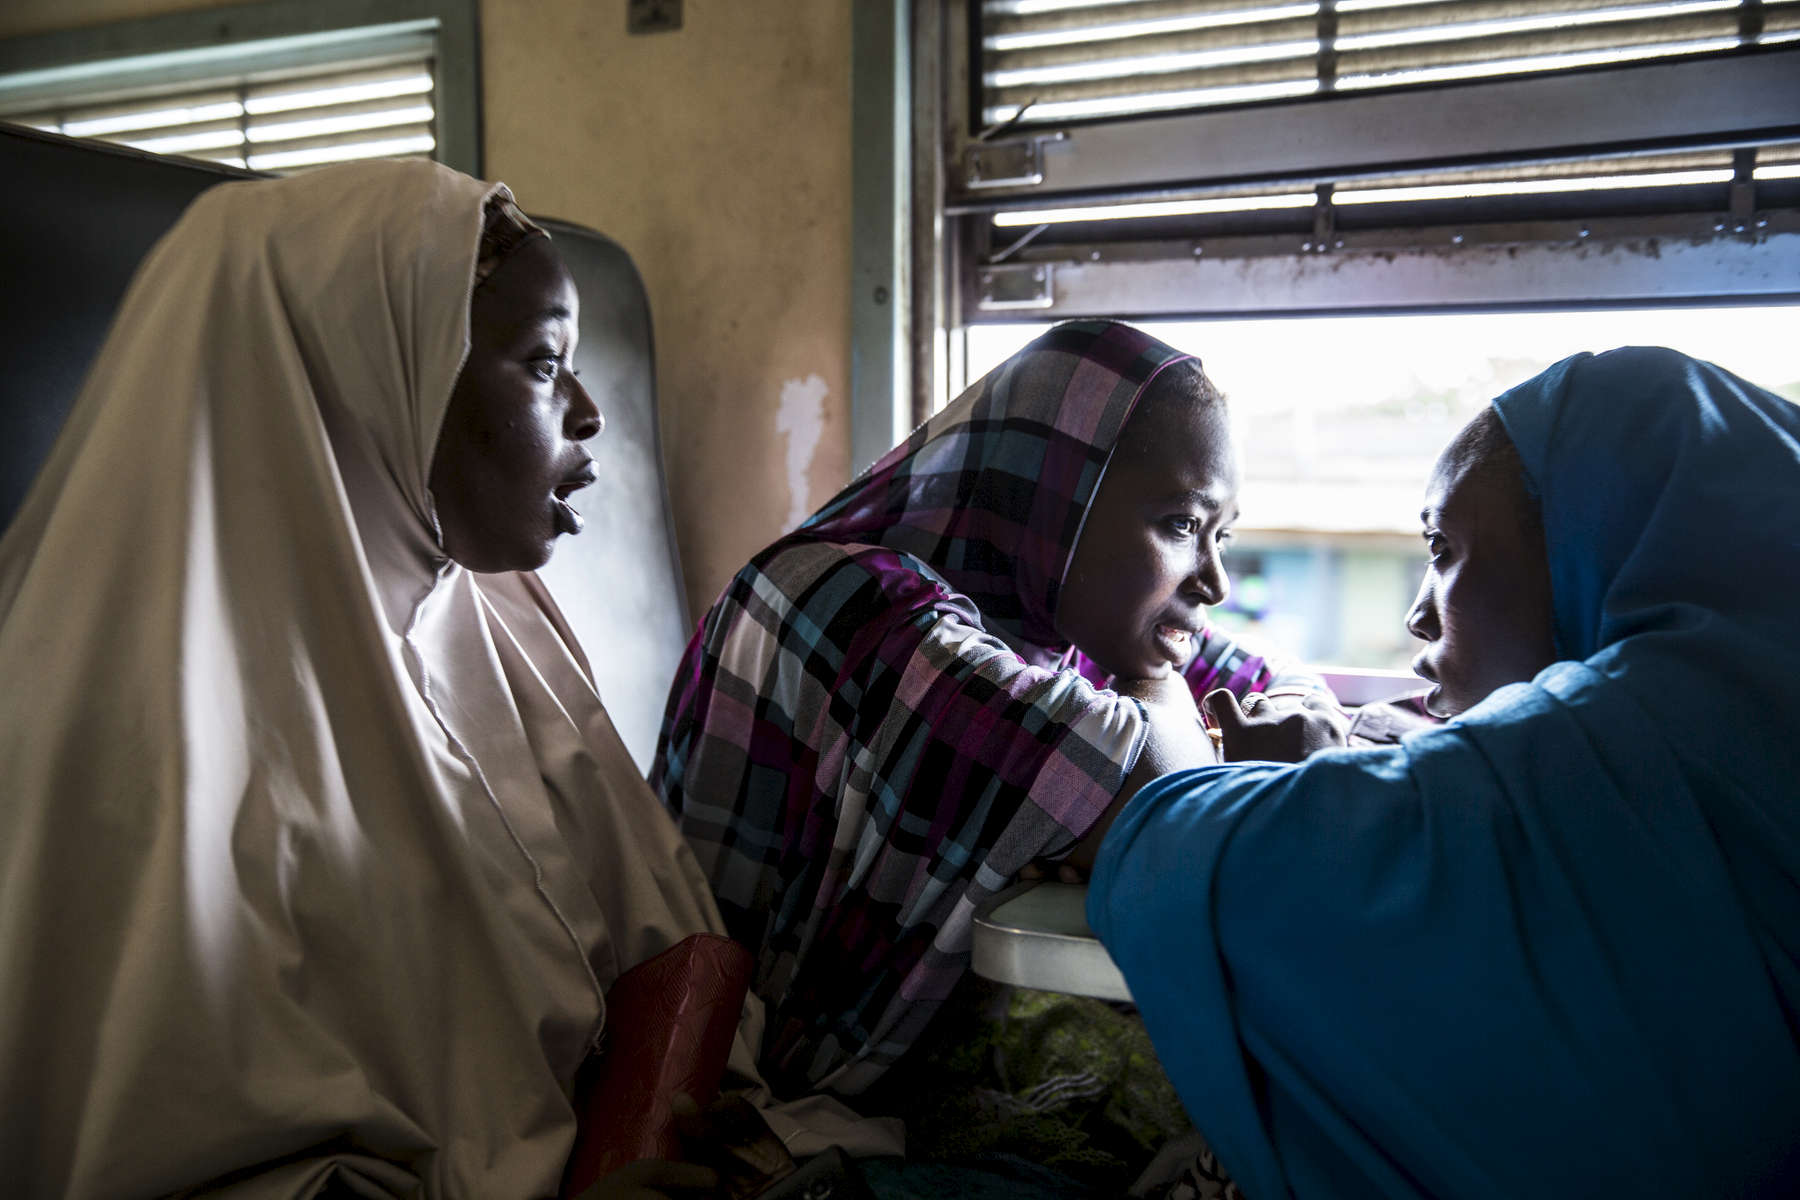 Sumawya Ibrahim, in the blue hijab, travels with her two sisters by train from Lagos to Zaria. They prepared for the journey for two days, making rice and beans to bring with them. Only one of the three girls is married and the other two hope to marry soon.No phone number.